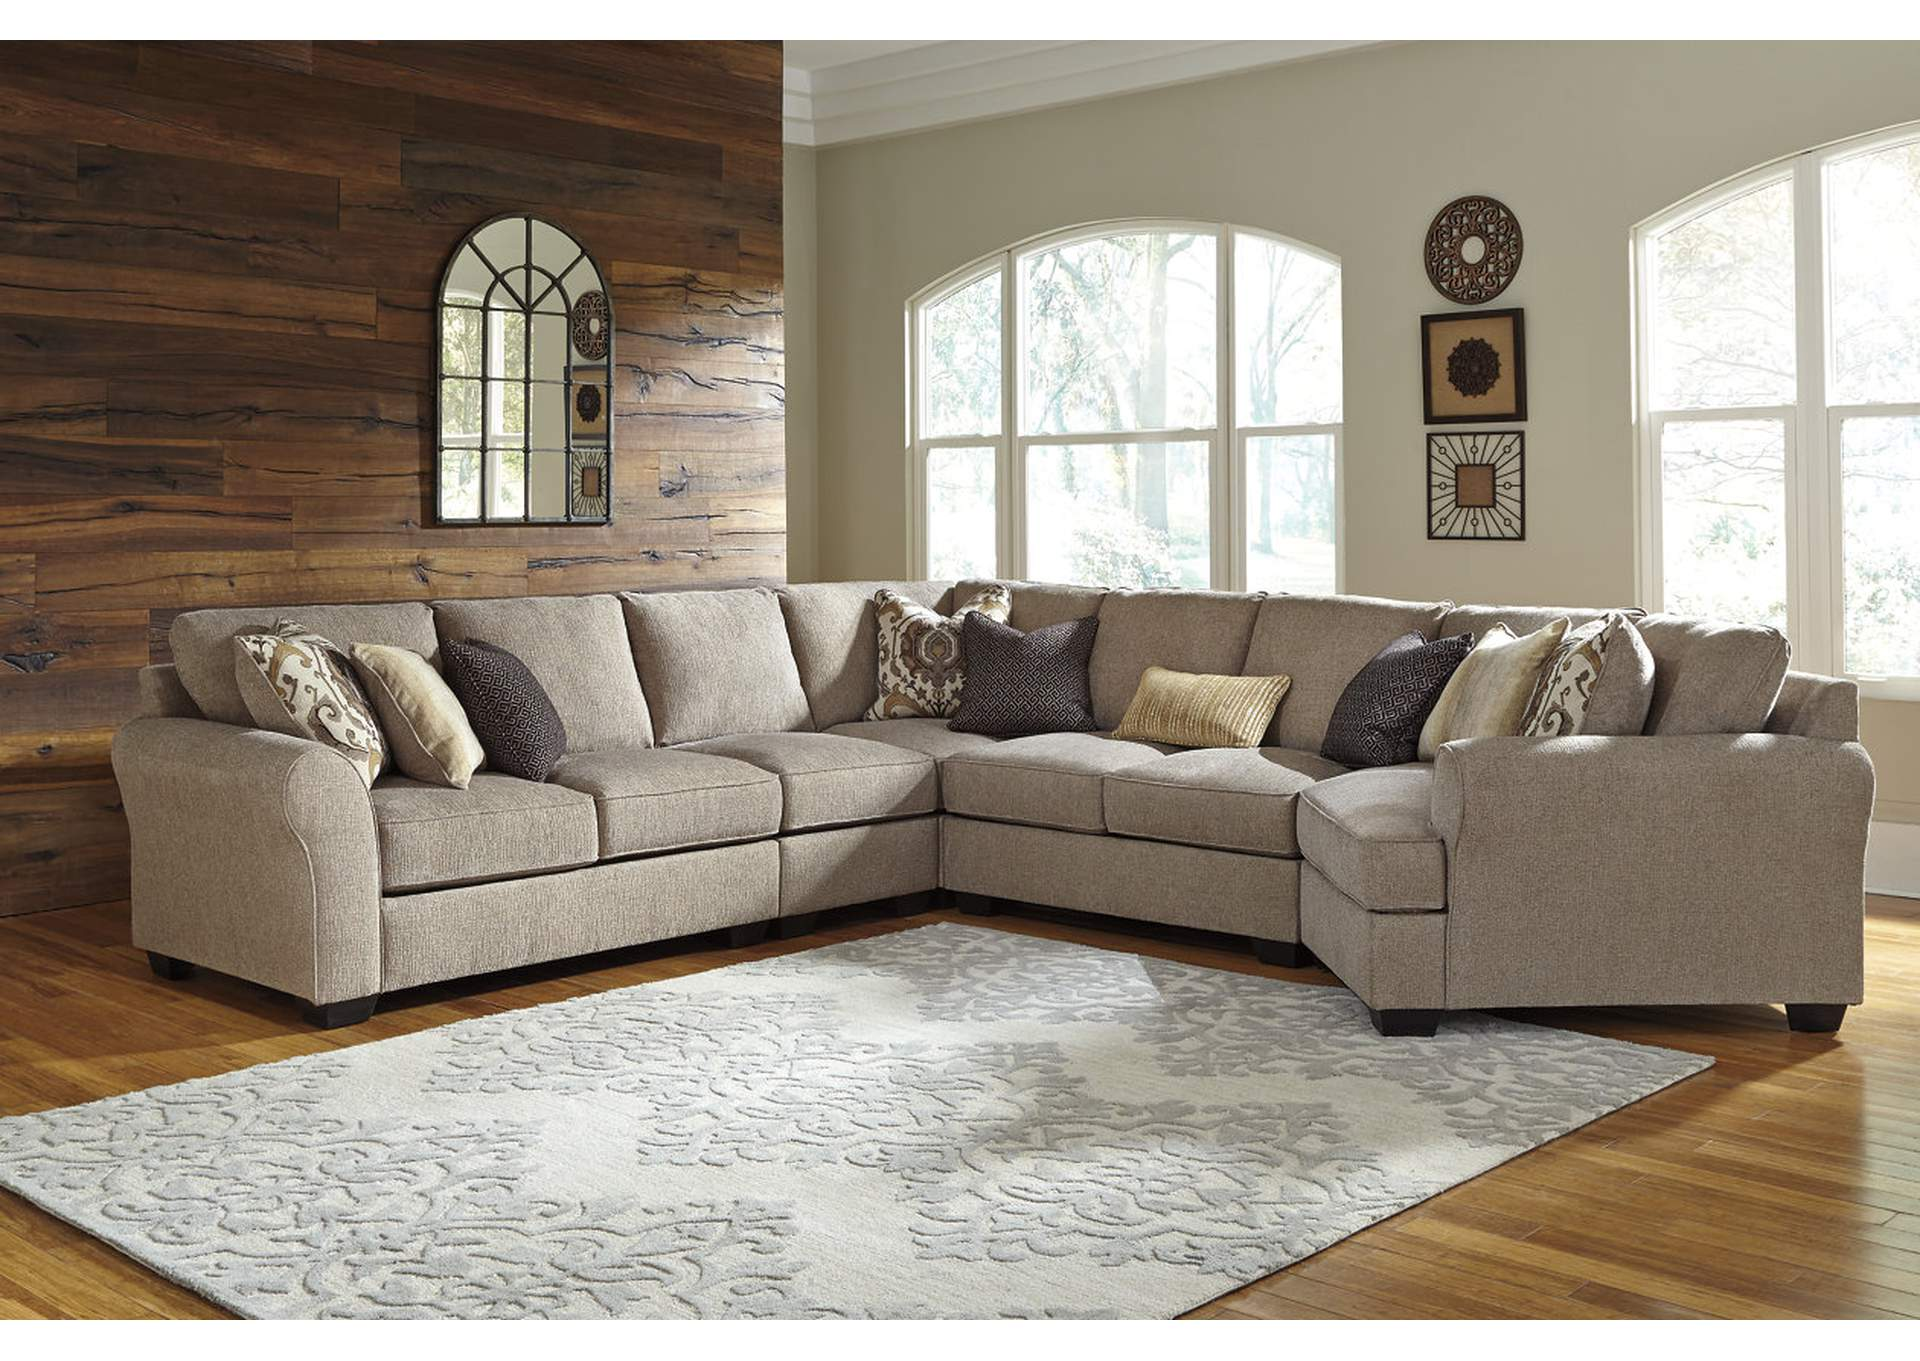 Pantomine Driftwood Extended Sectional w/Right Facing Cuddler,ABF Benchcraft